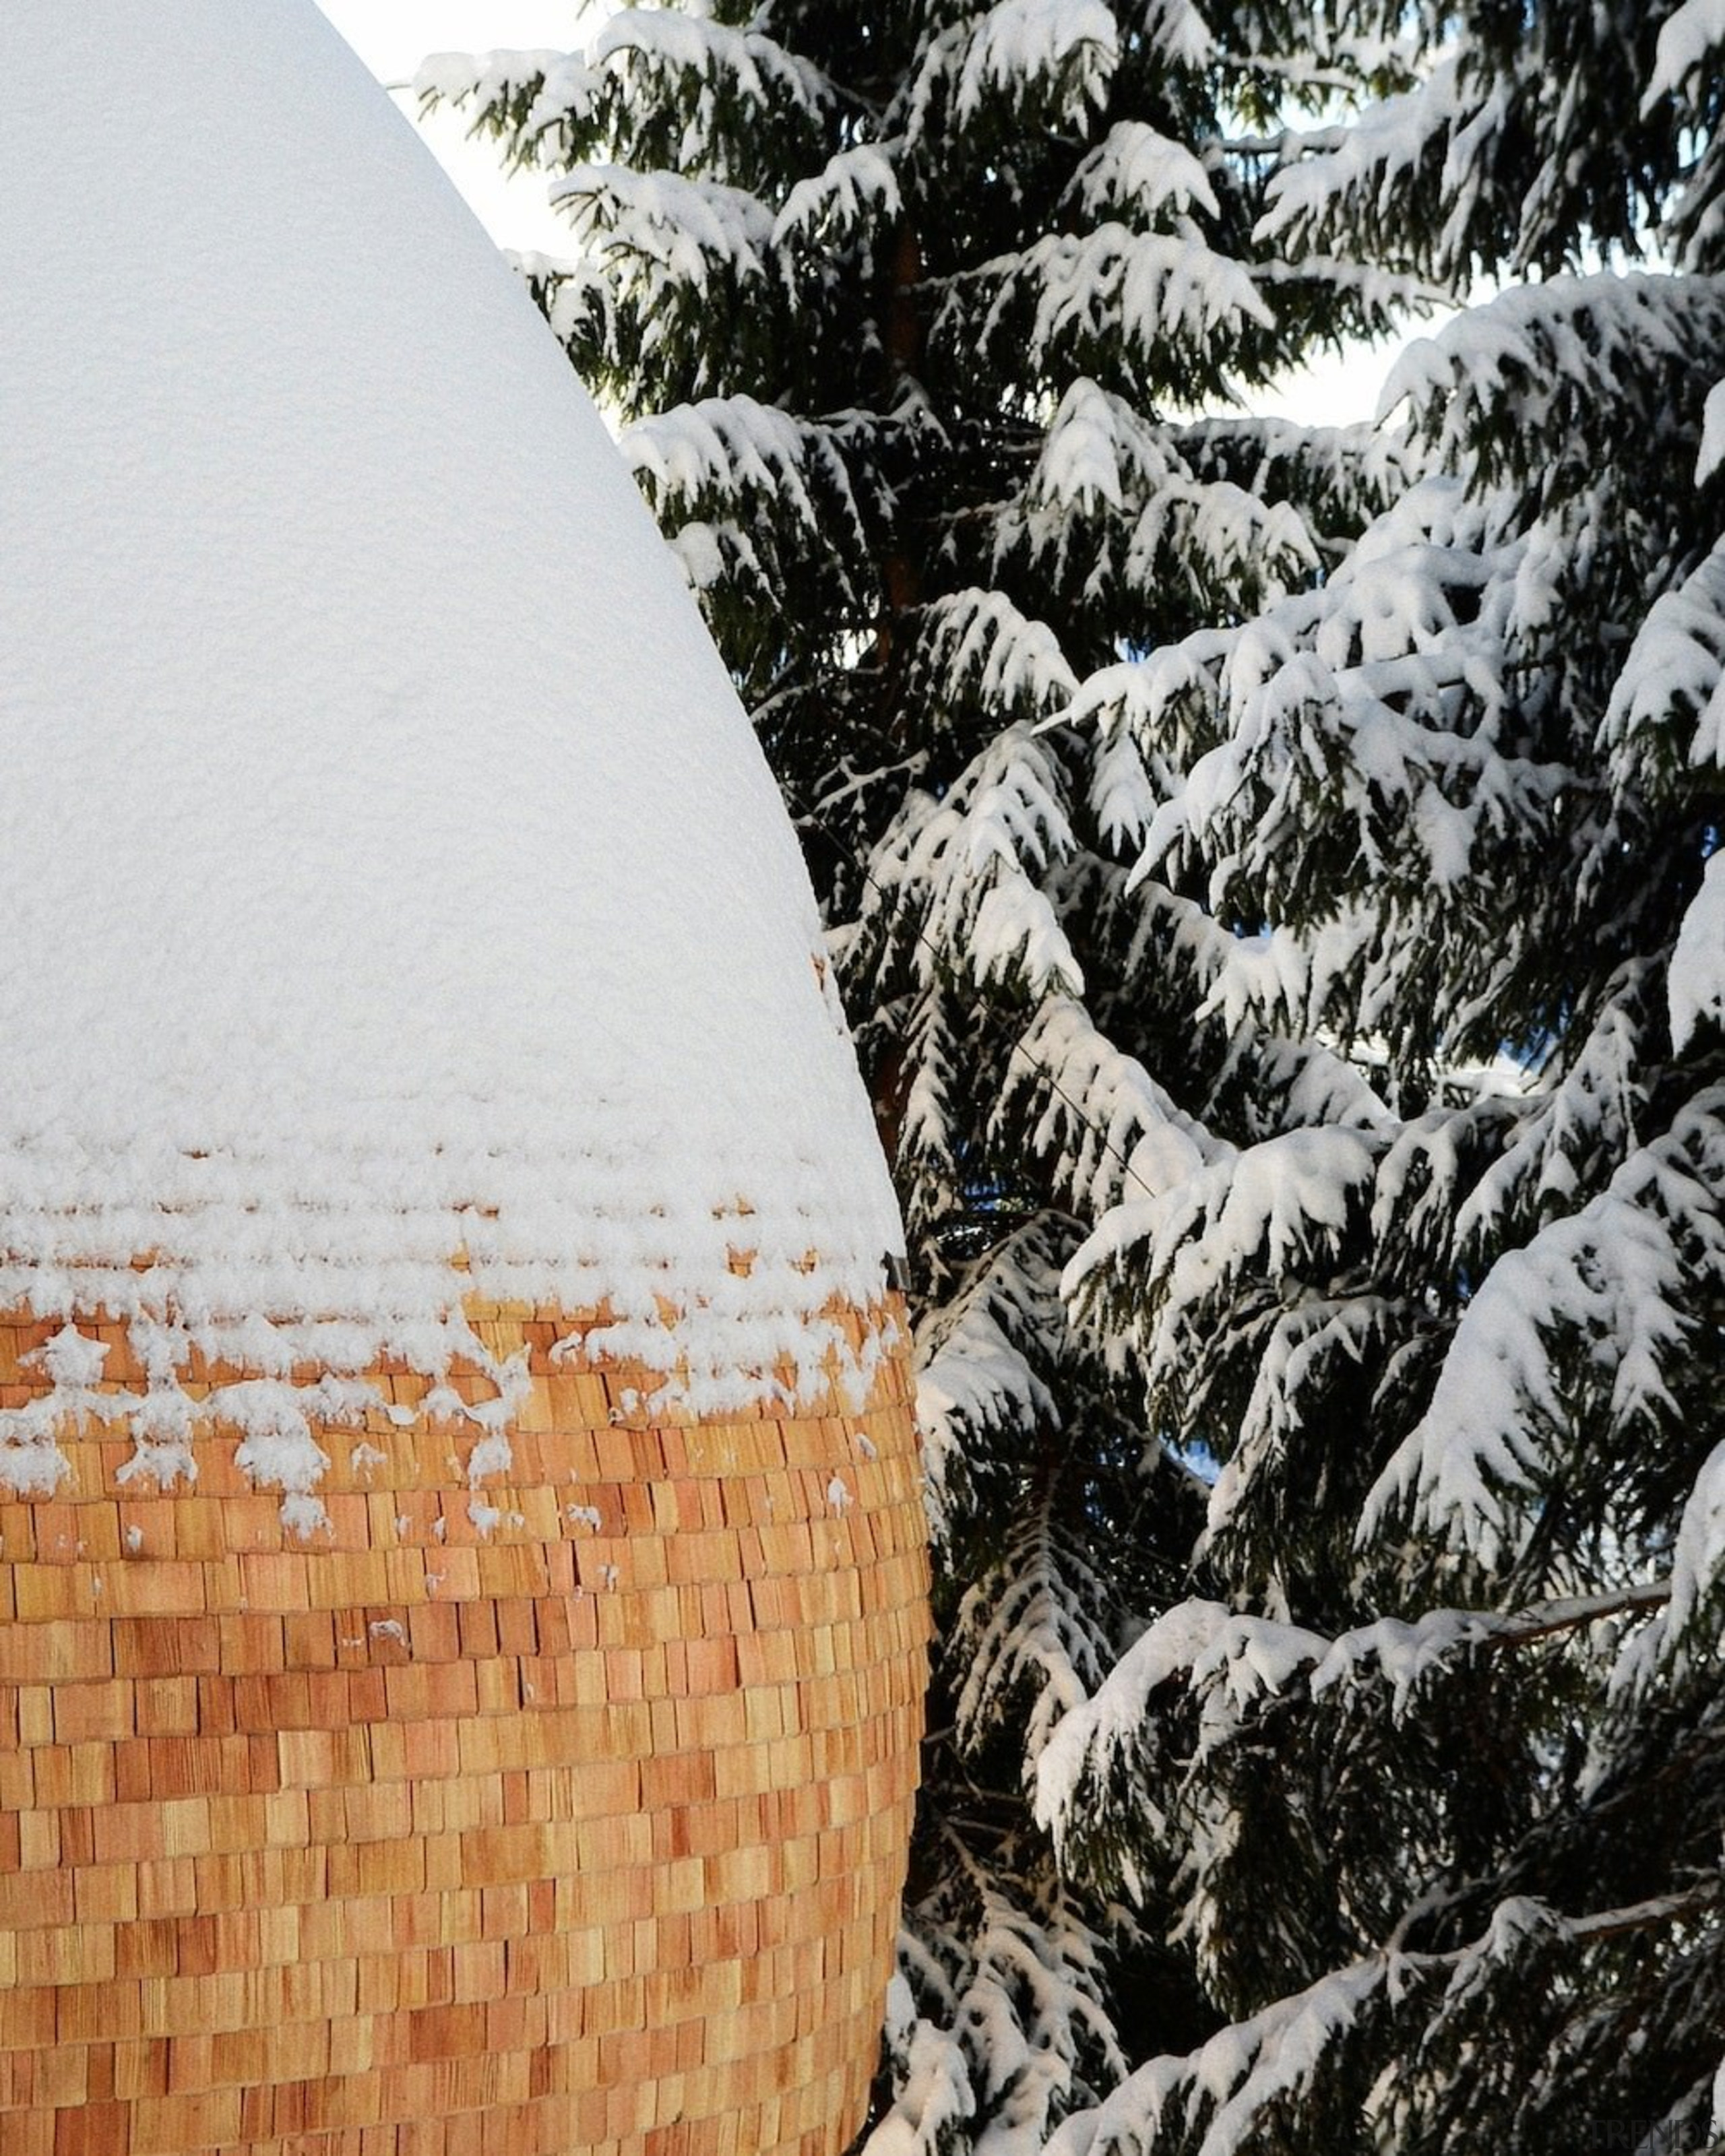 A snow-capped wood egg - A snow-capped wood branch, freezing, frost, snow, tree, winter, wood, white, black